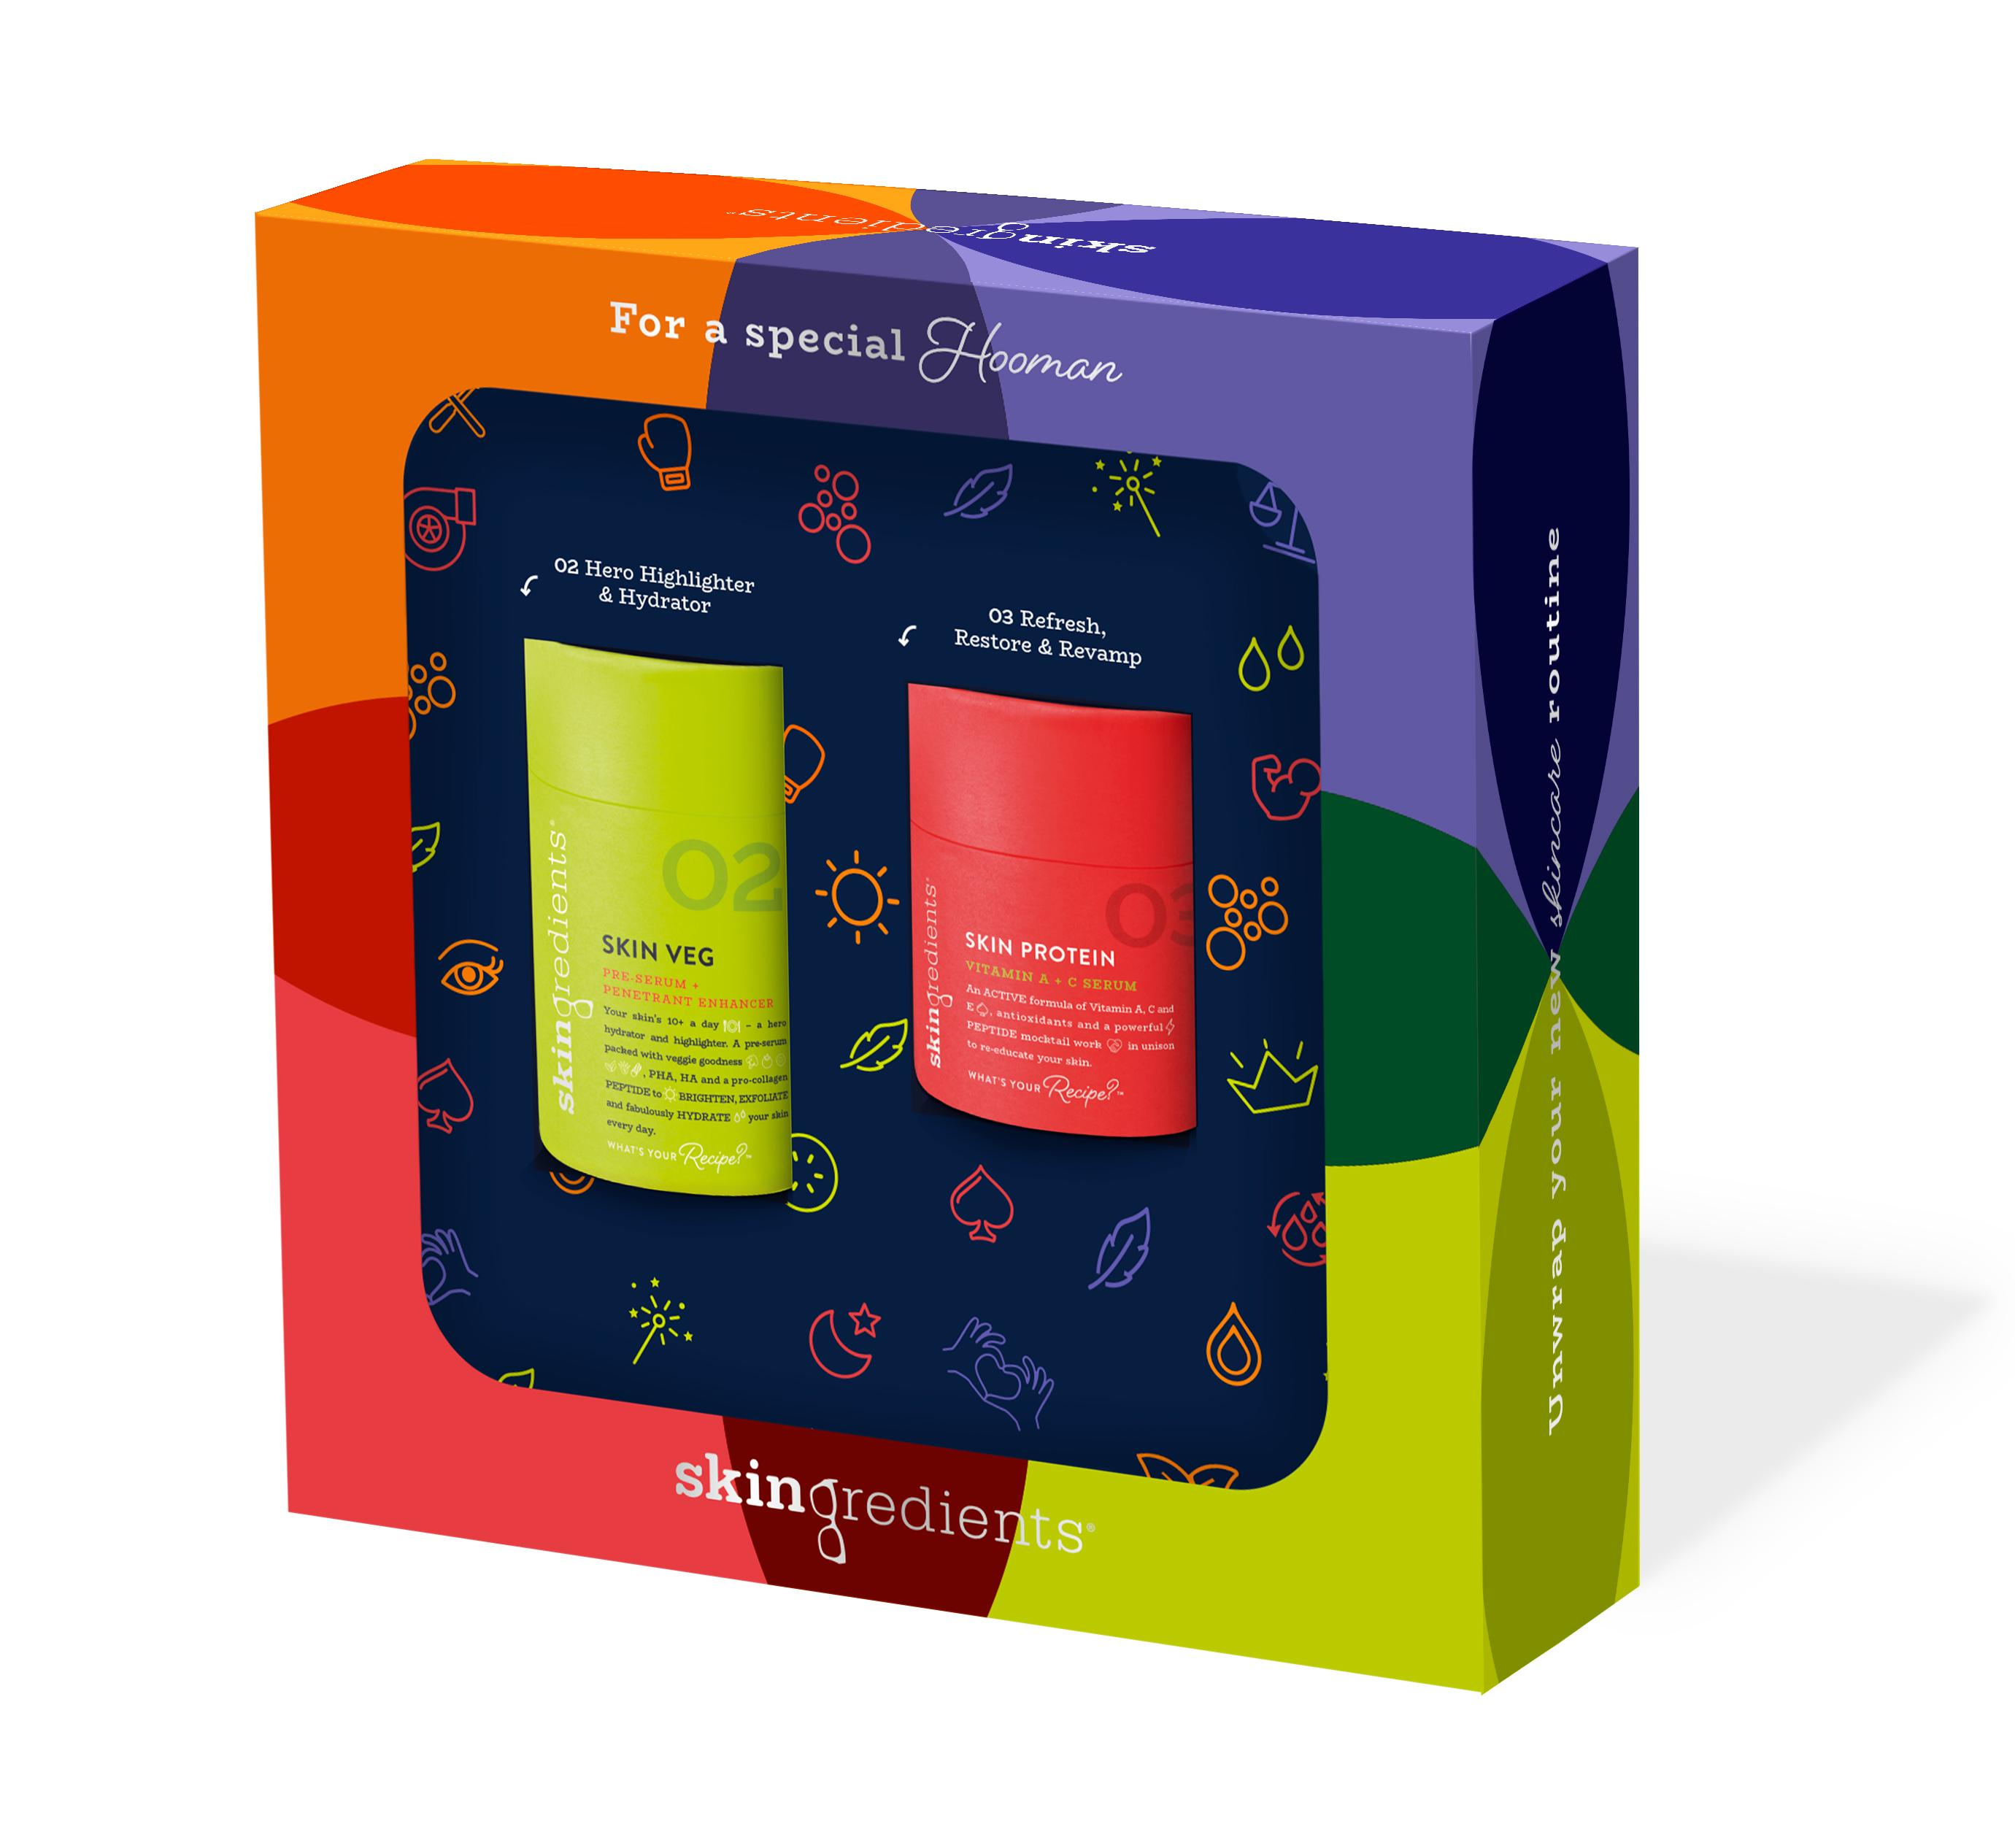 Skingredients Skin Veg Gift Pack